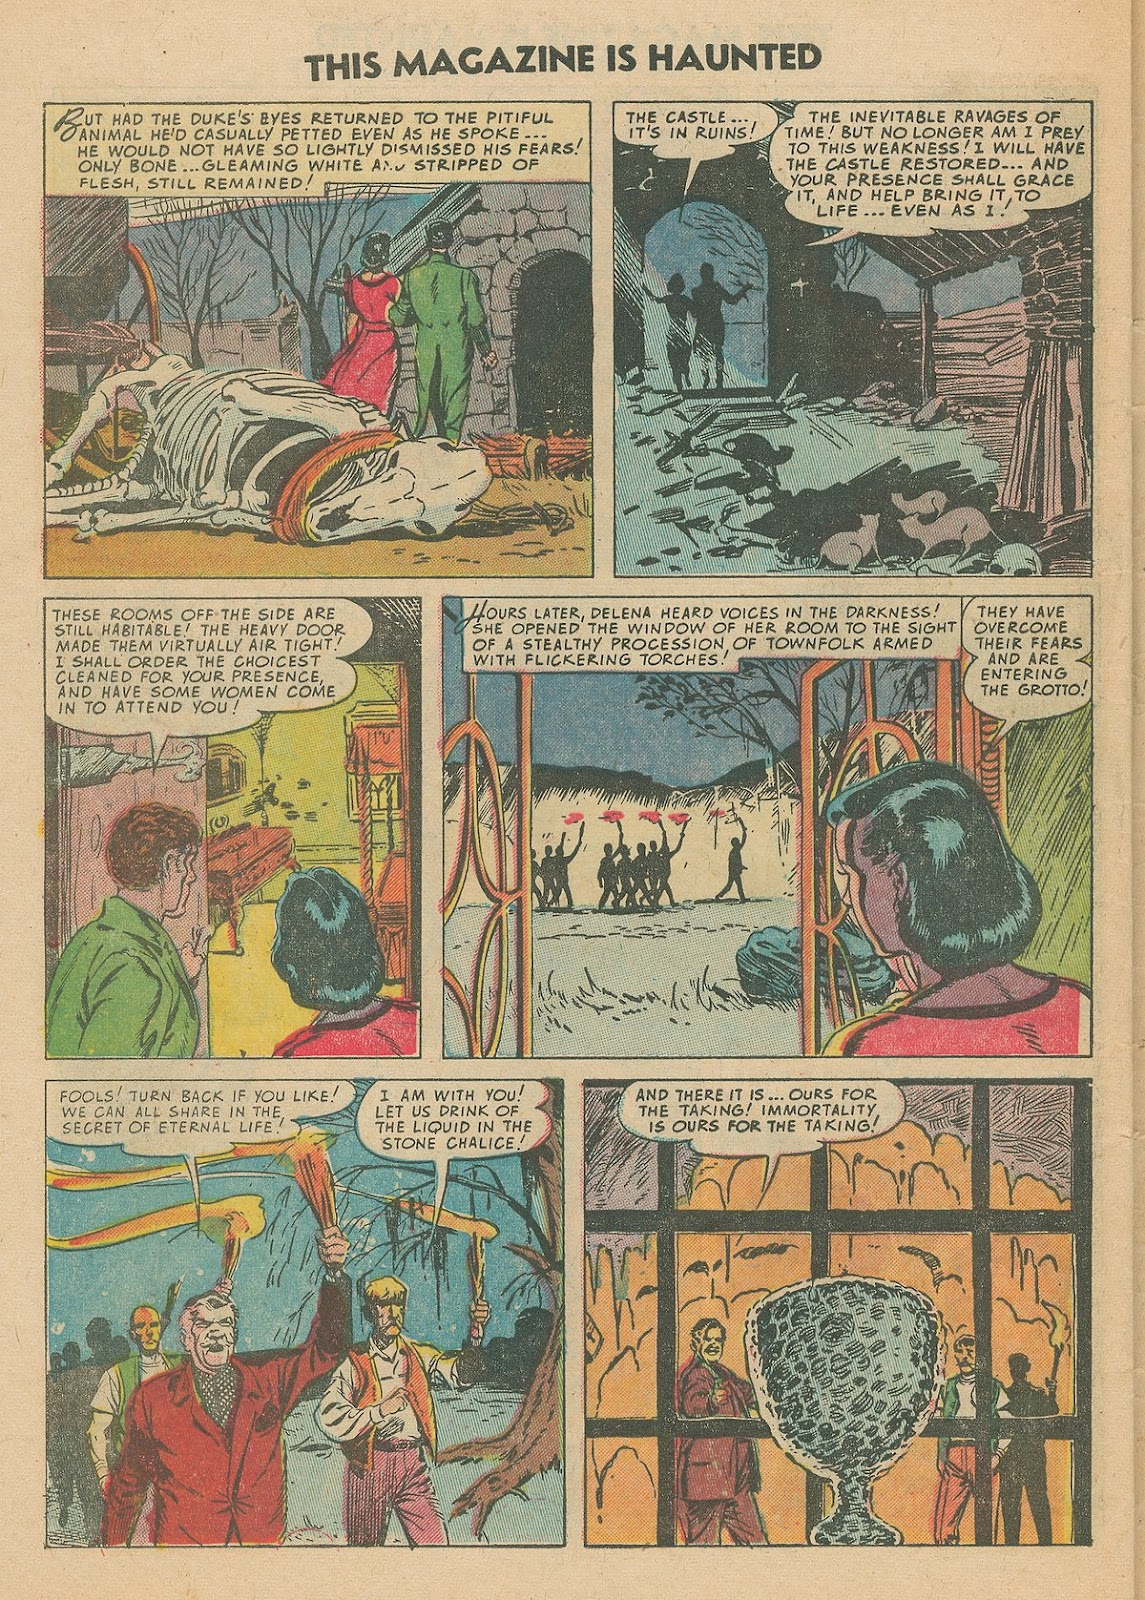 Read online This Magazine Is Haunted comic -  Issue #21 - 28